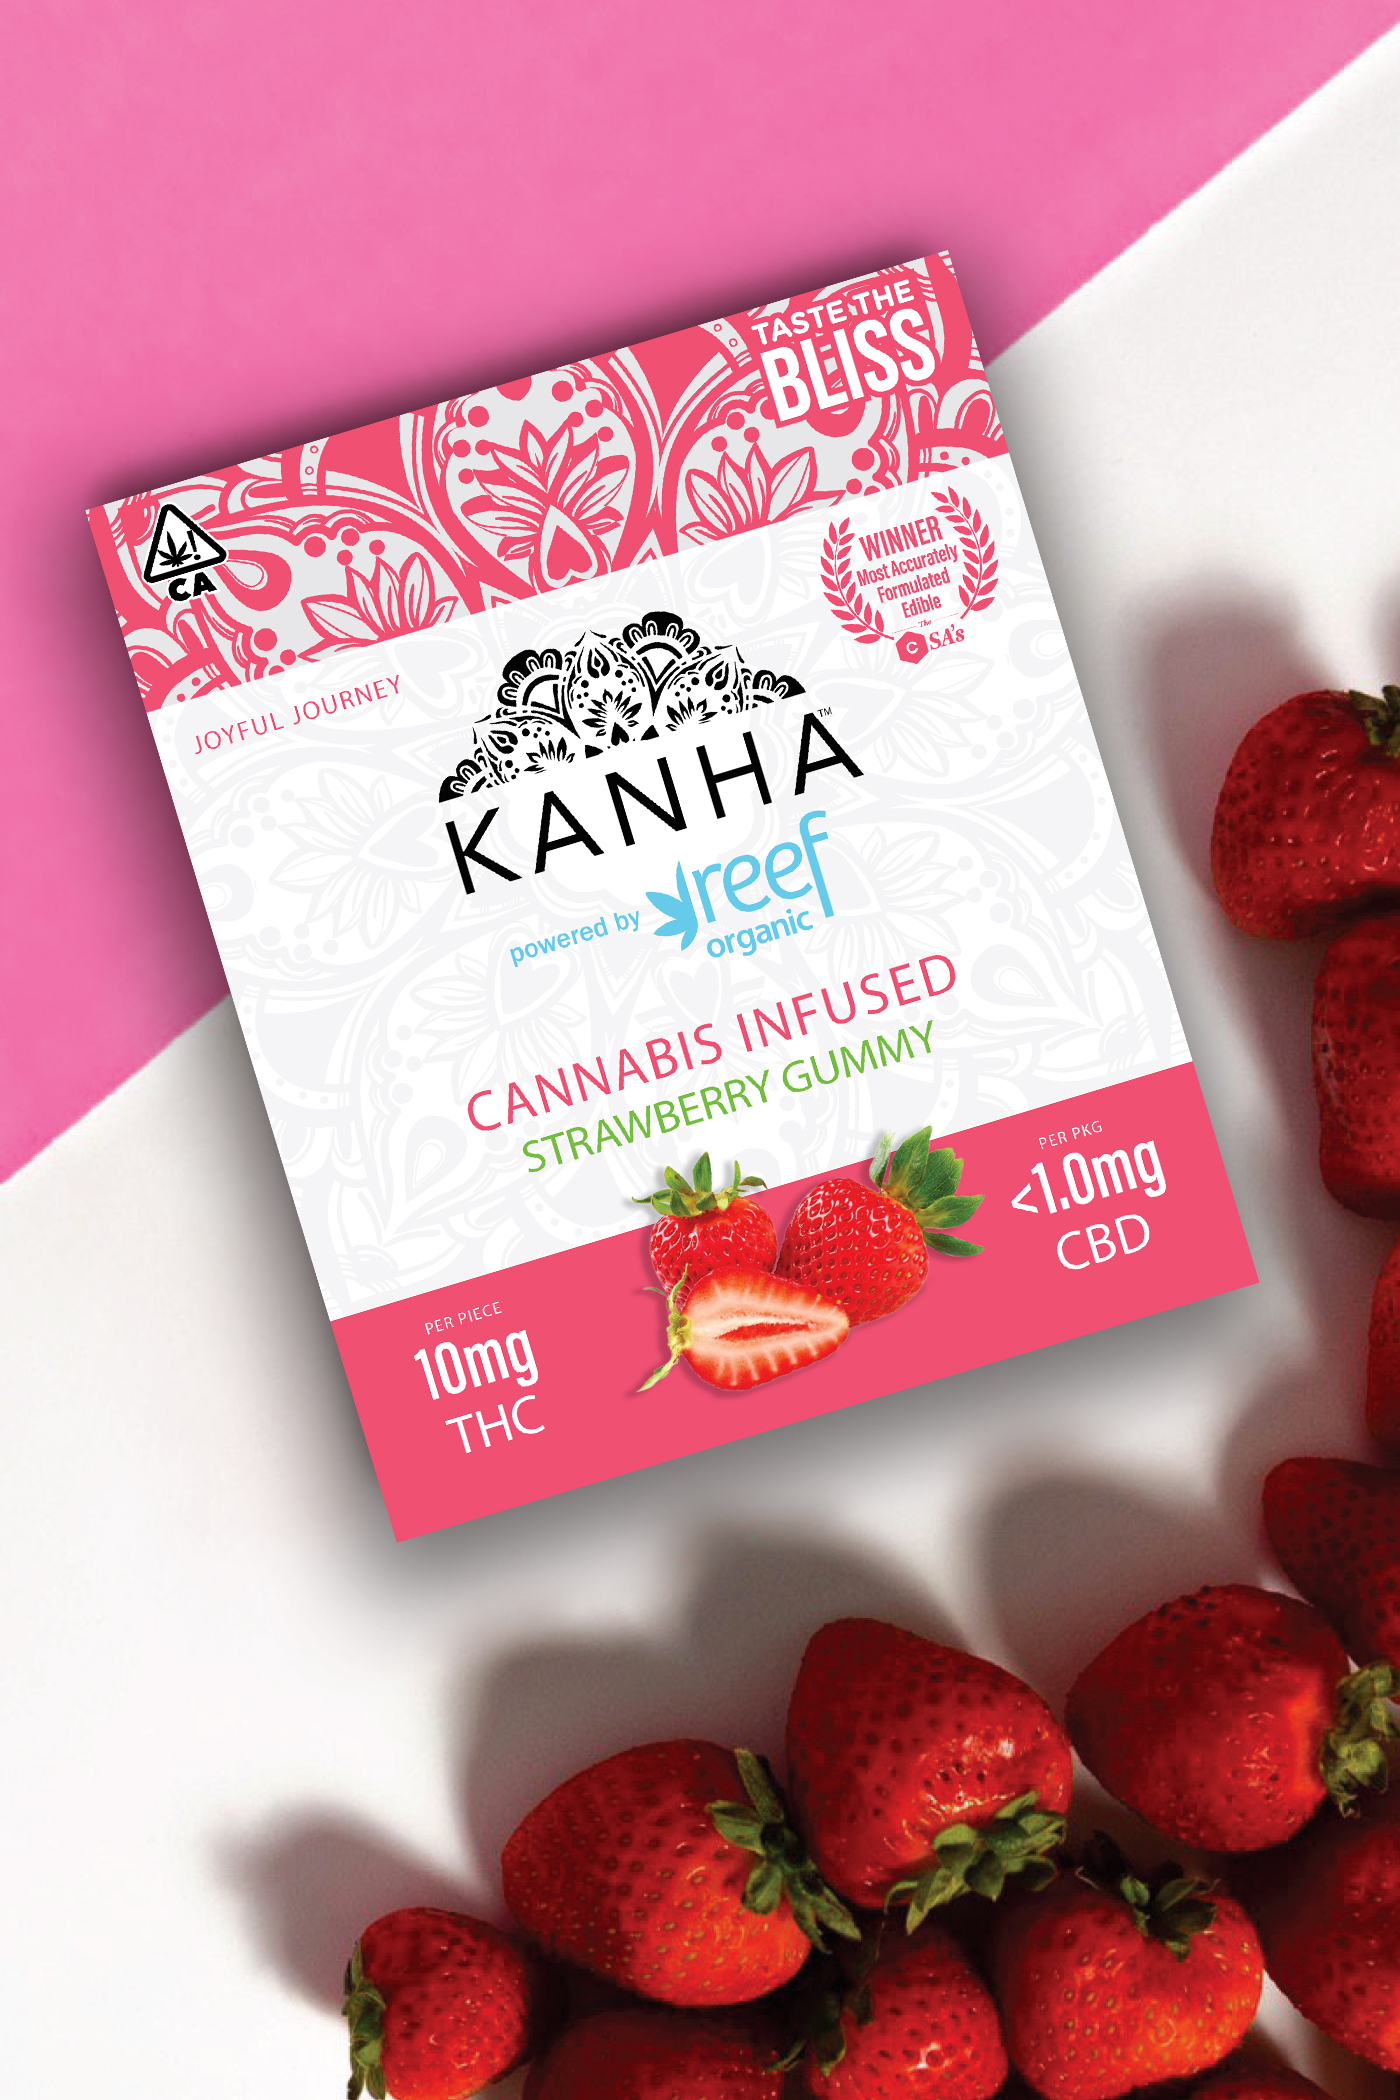 Aqualitas and Sunderstorm partner to bring Kanha Edible Gummies to the Canadian Cannabis Market